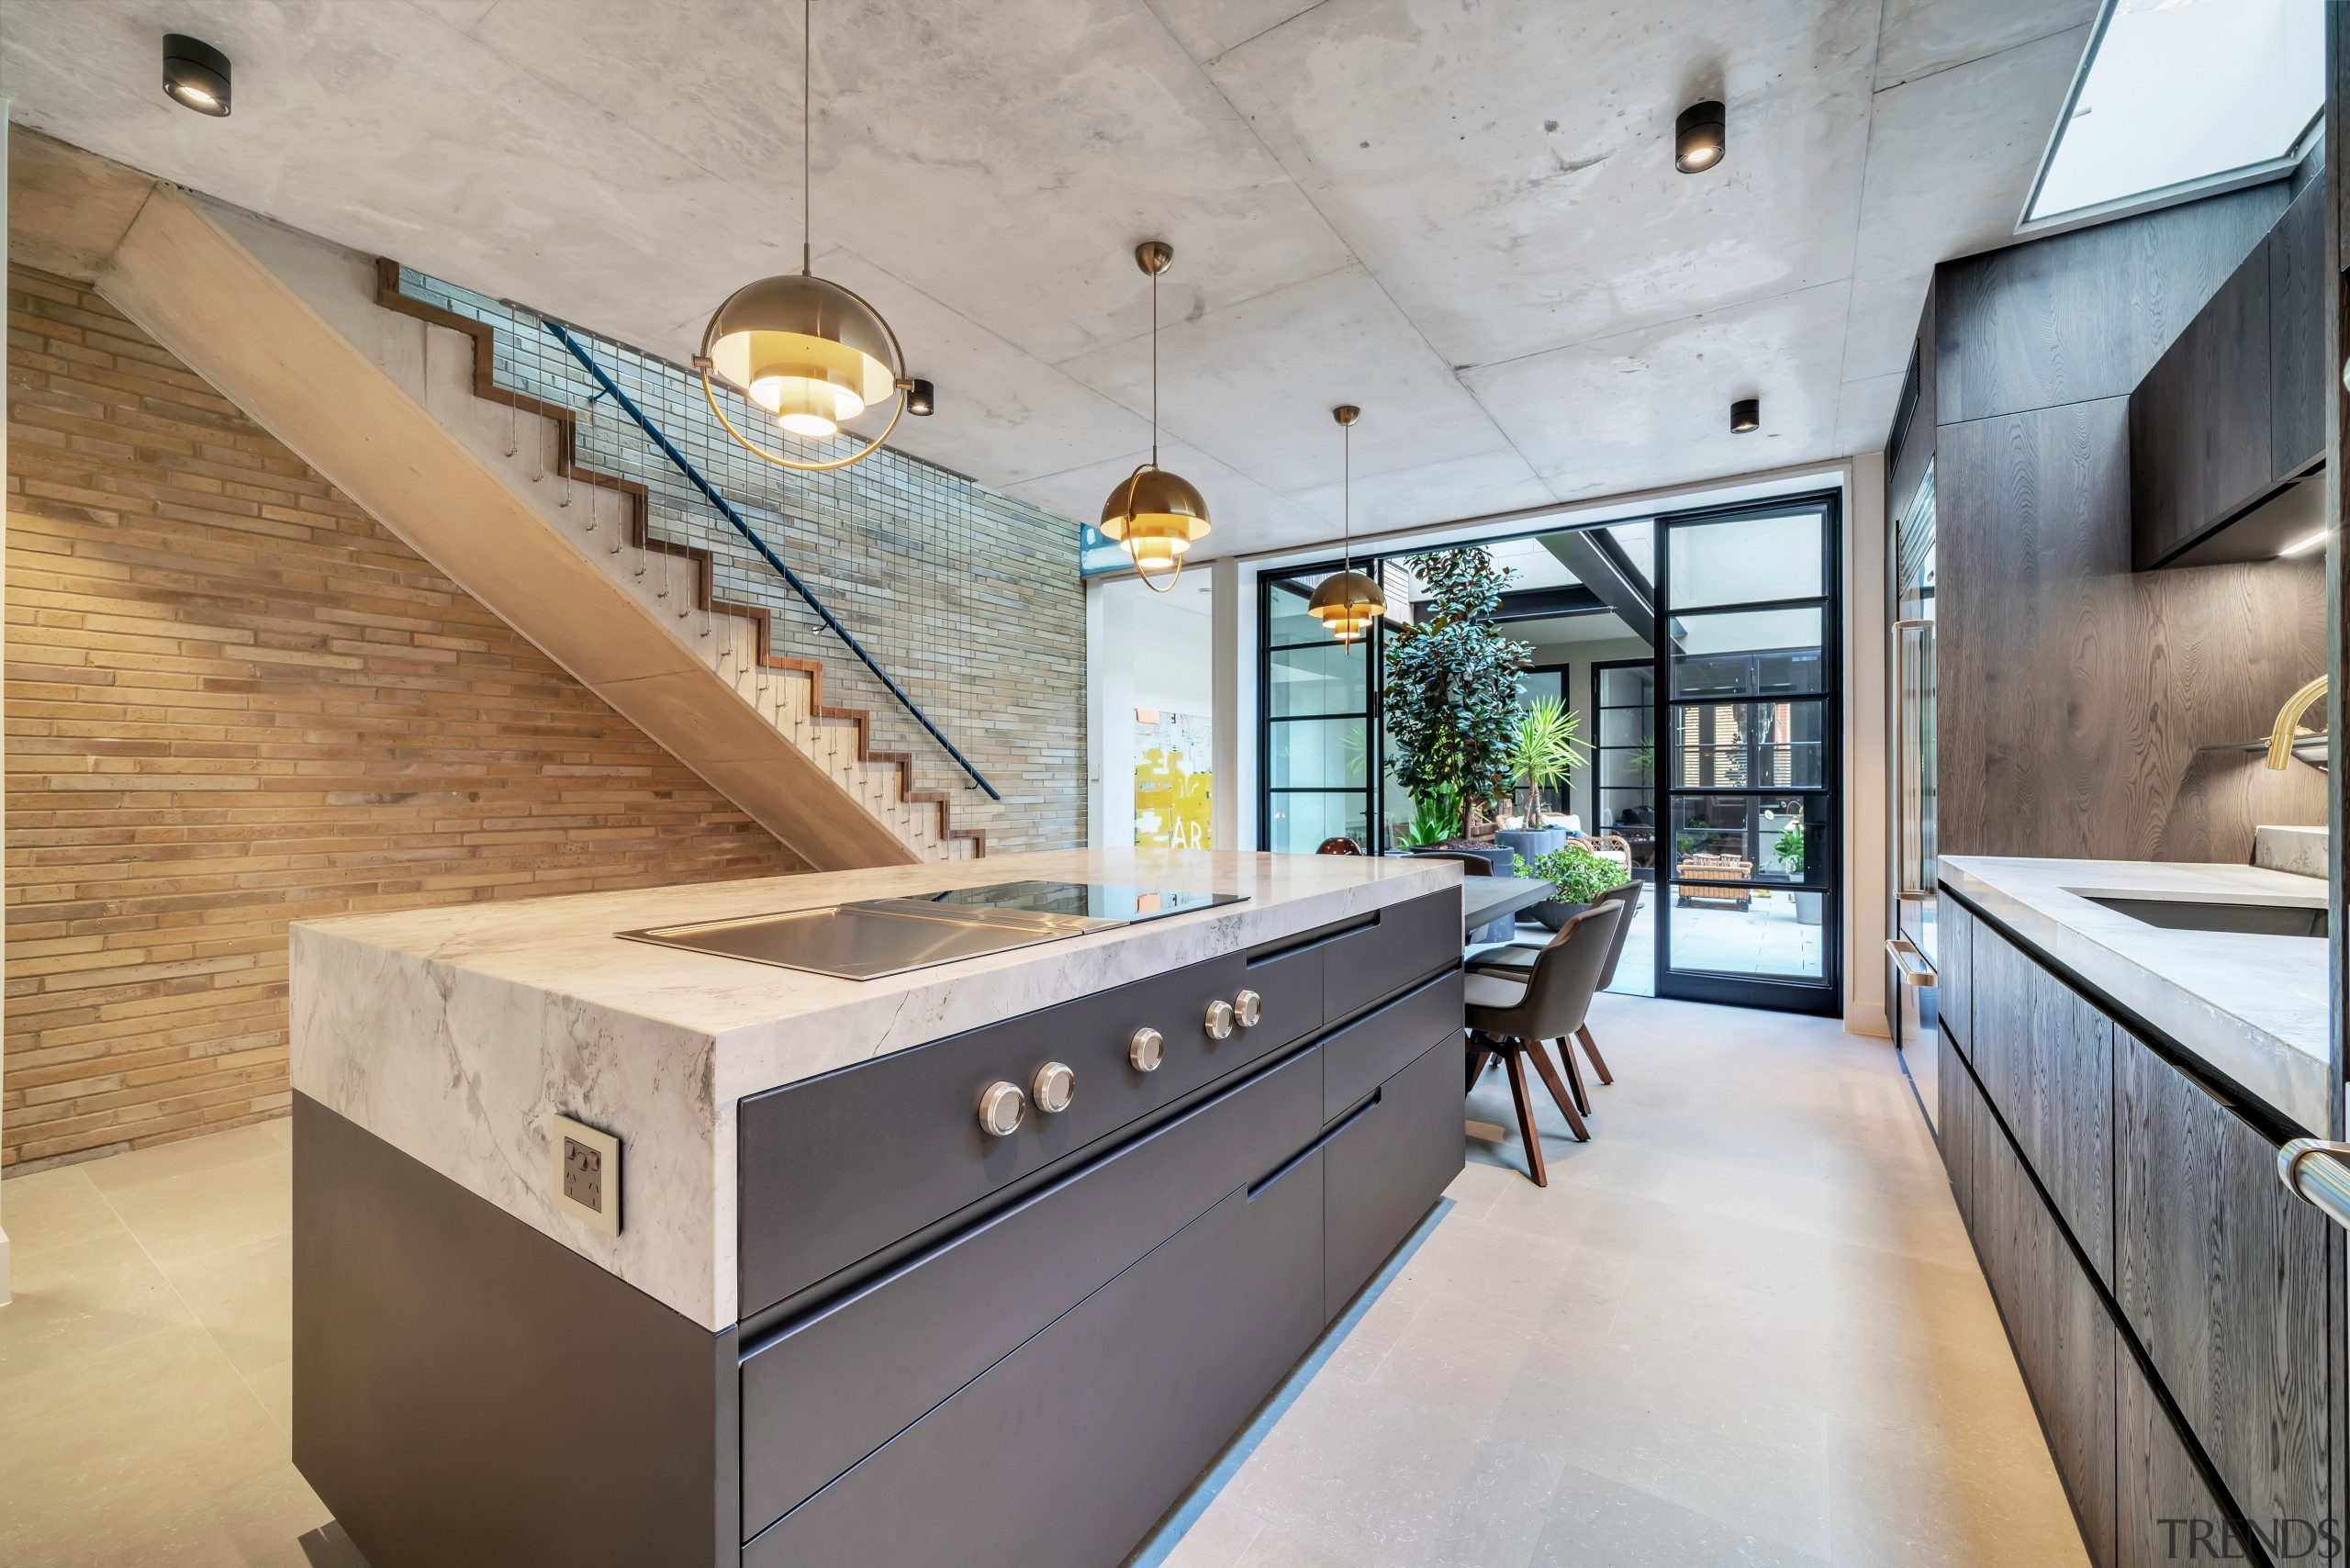 Flat-out efficient – cooking and entertaining at the